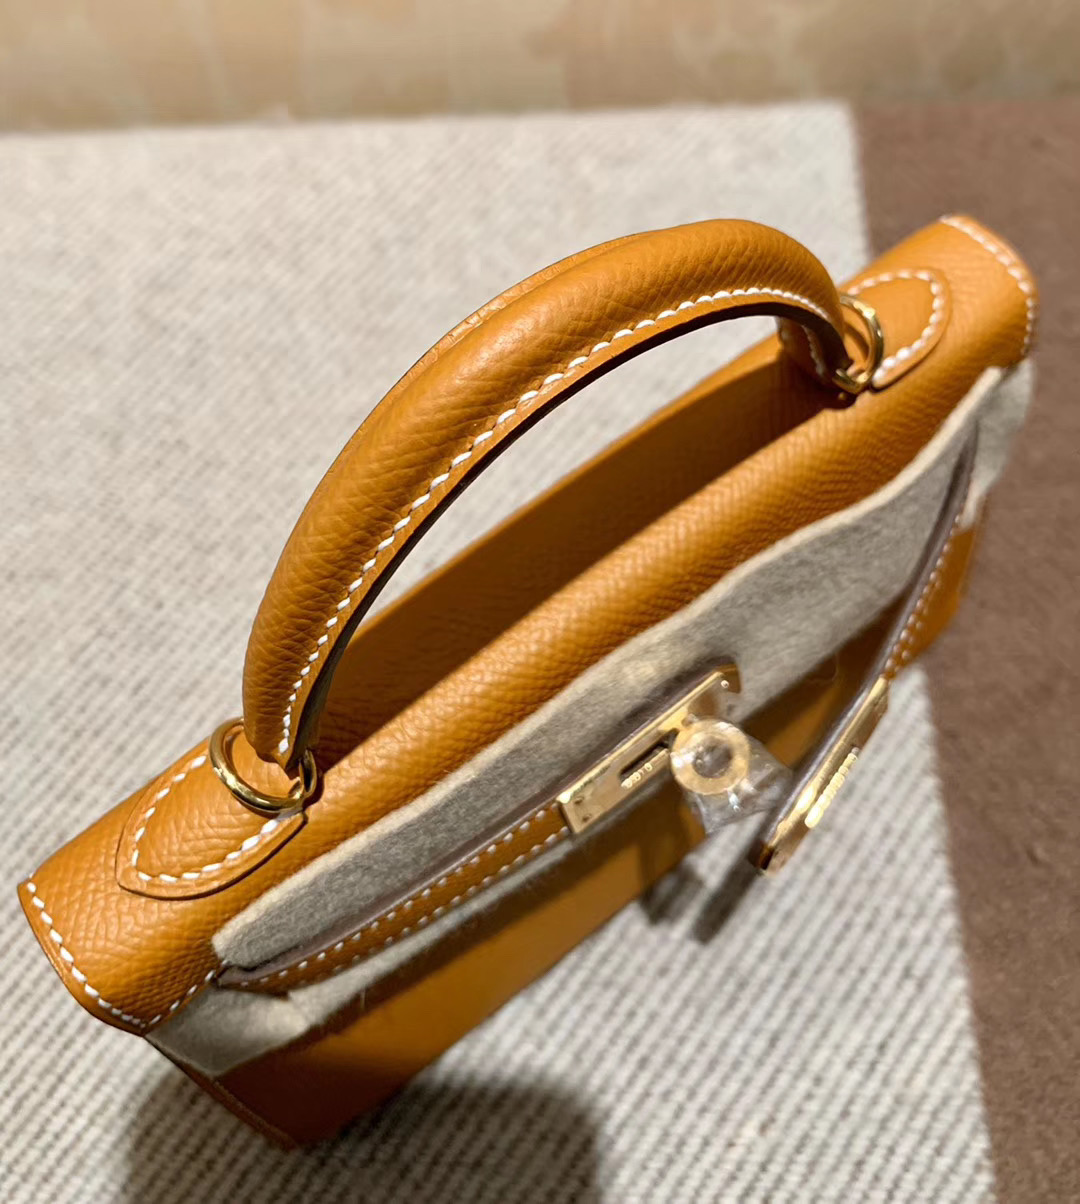 爱马仕 Hermes Mini Kelly 19CM 太妃金 金扣 Epsom皮